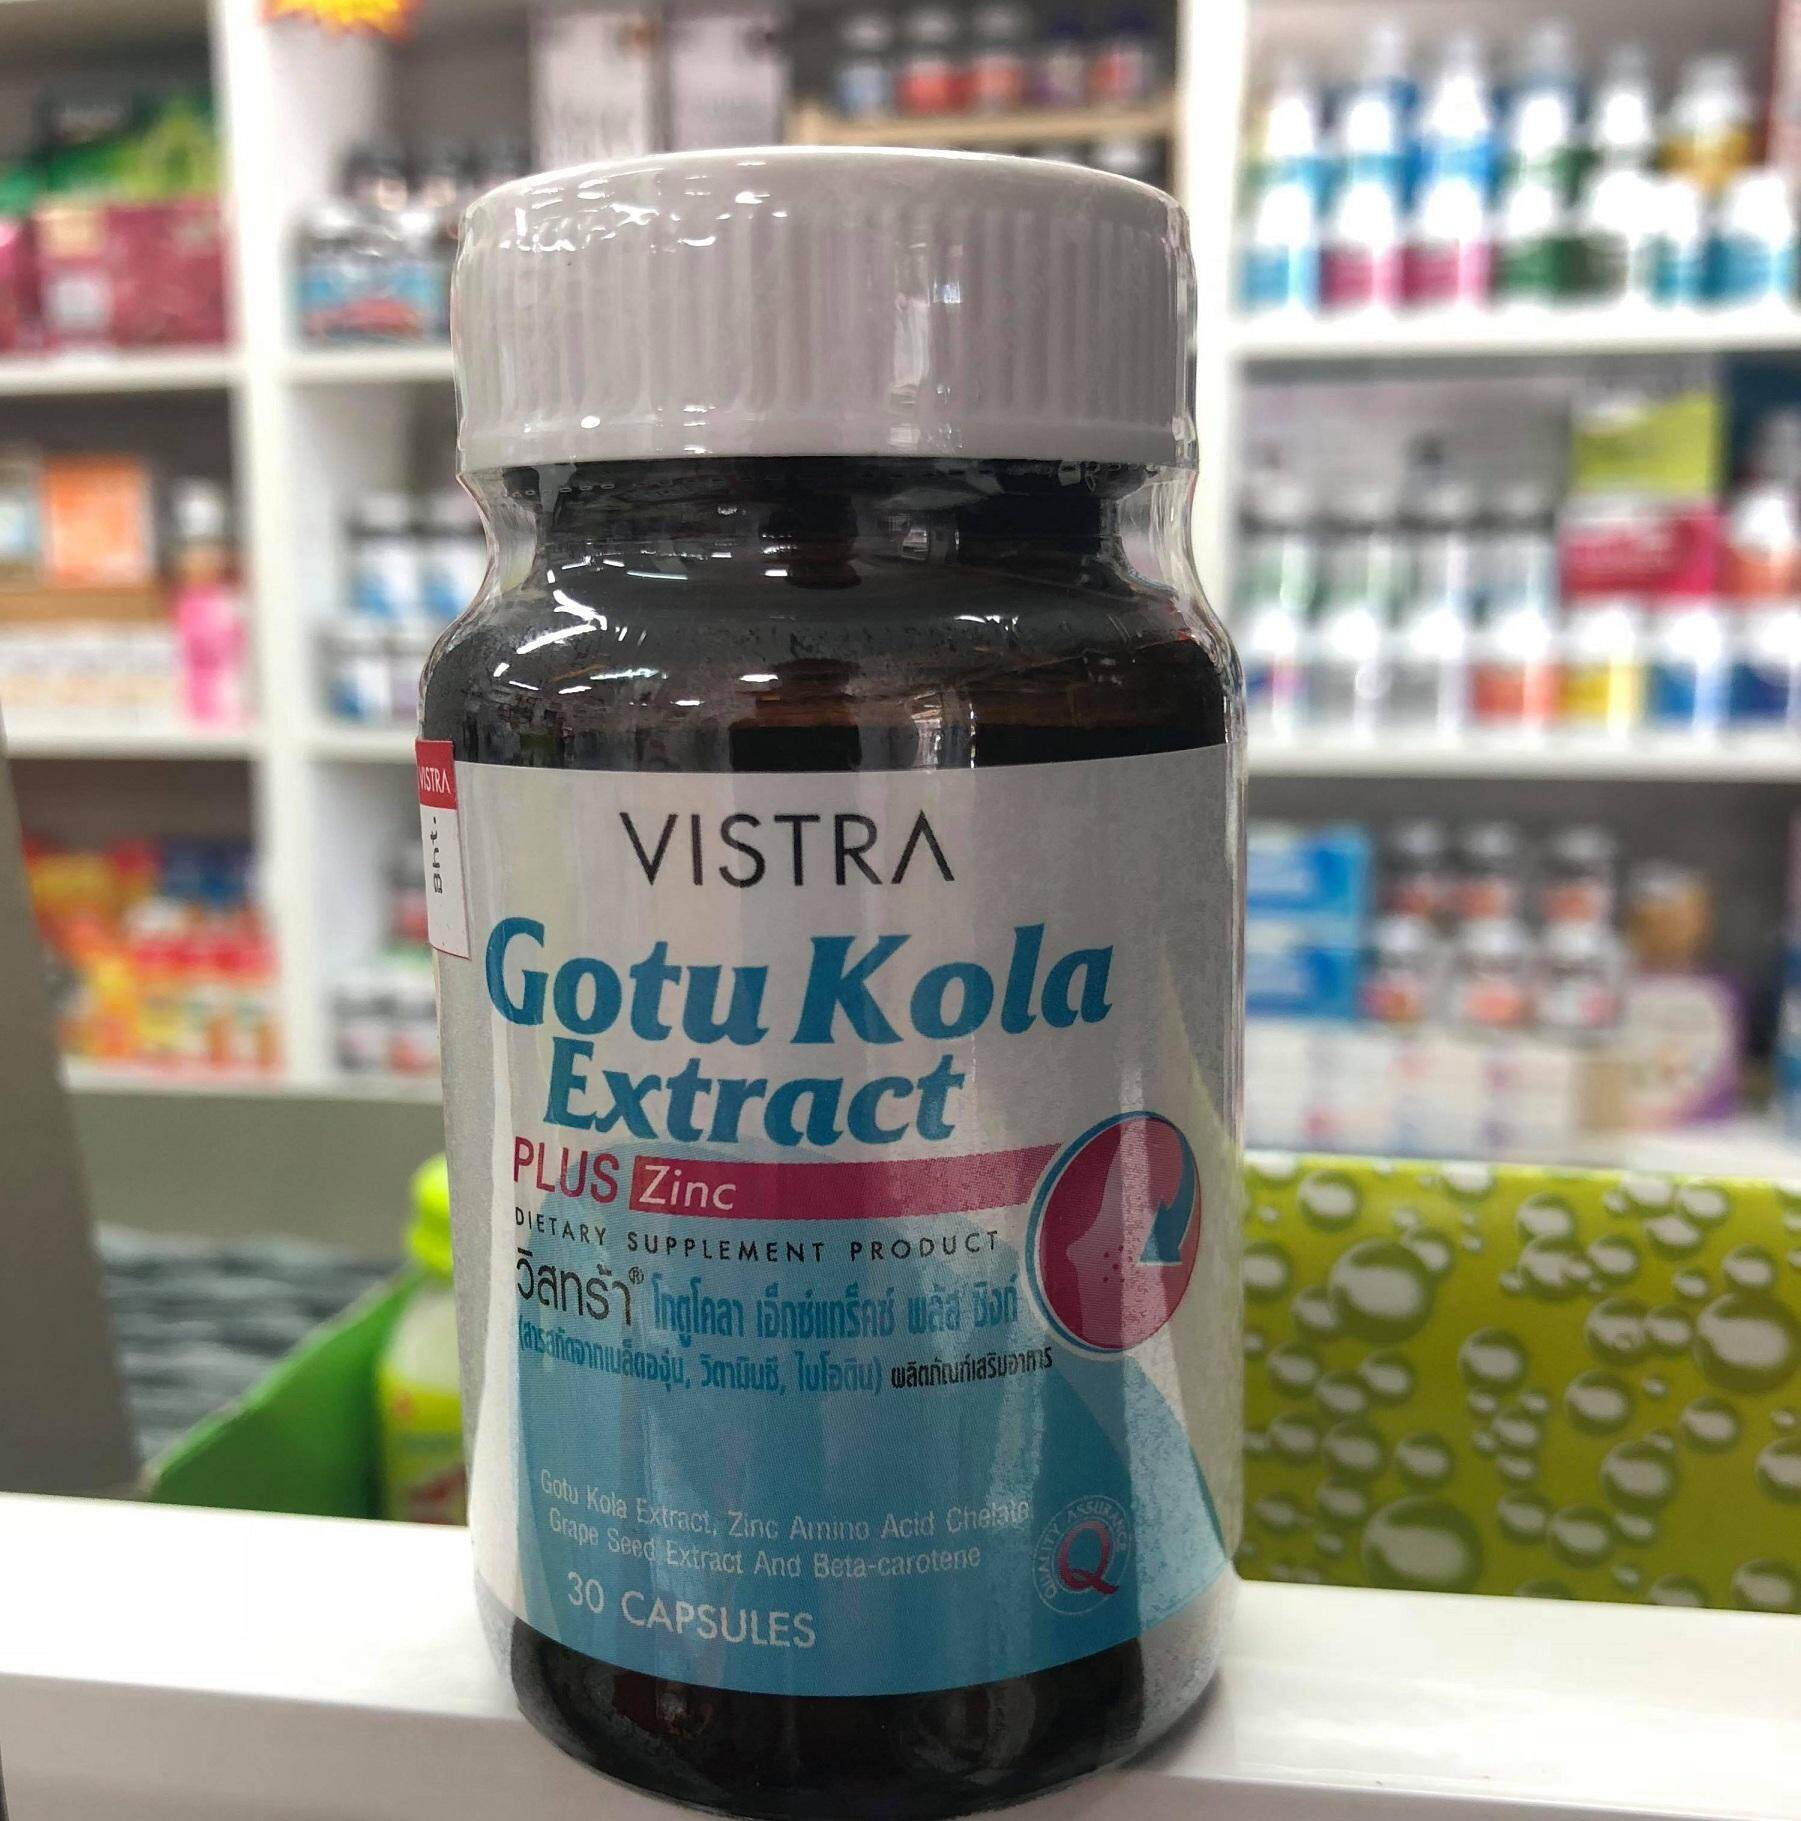 VISTRA Gotu Kola Extract plus Zinc 30เม็ด 1ขวด